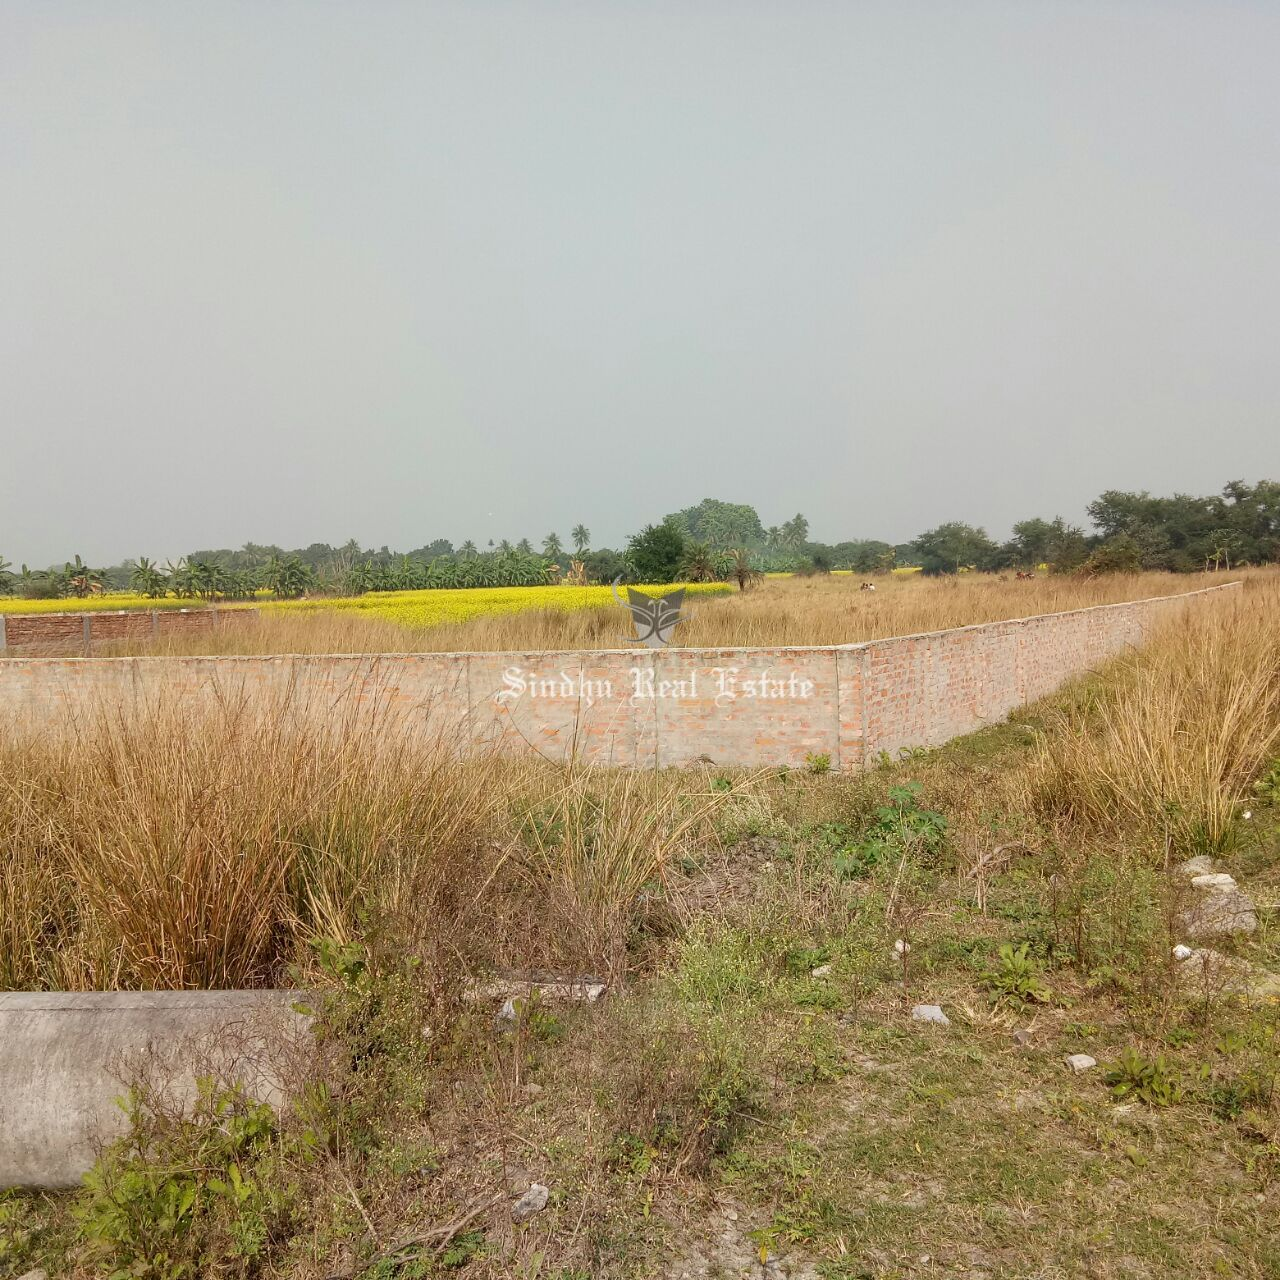 Available Best Land in Howrah With the Necessary Facilities